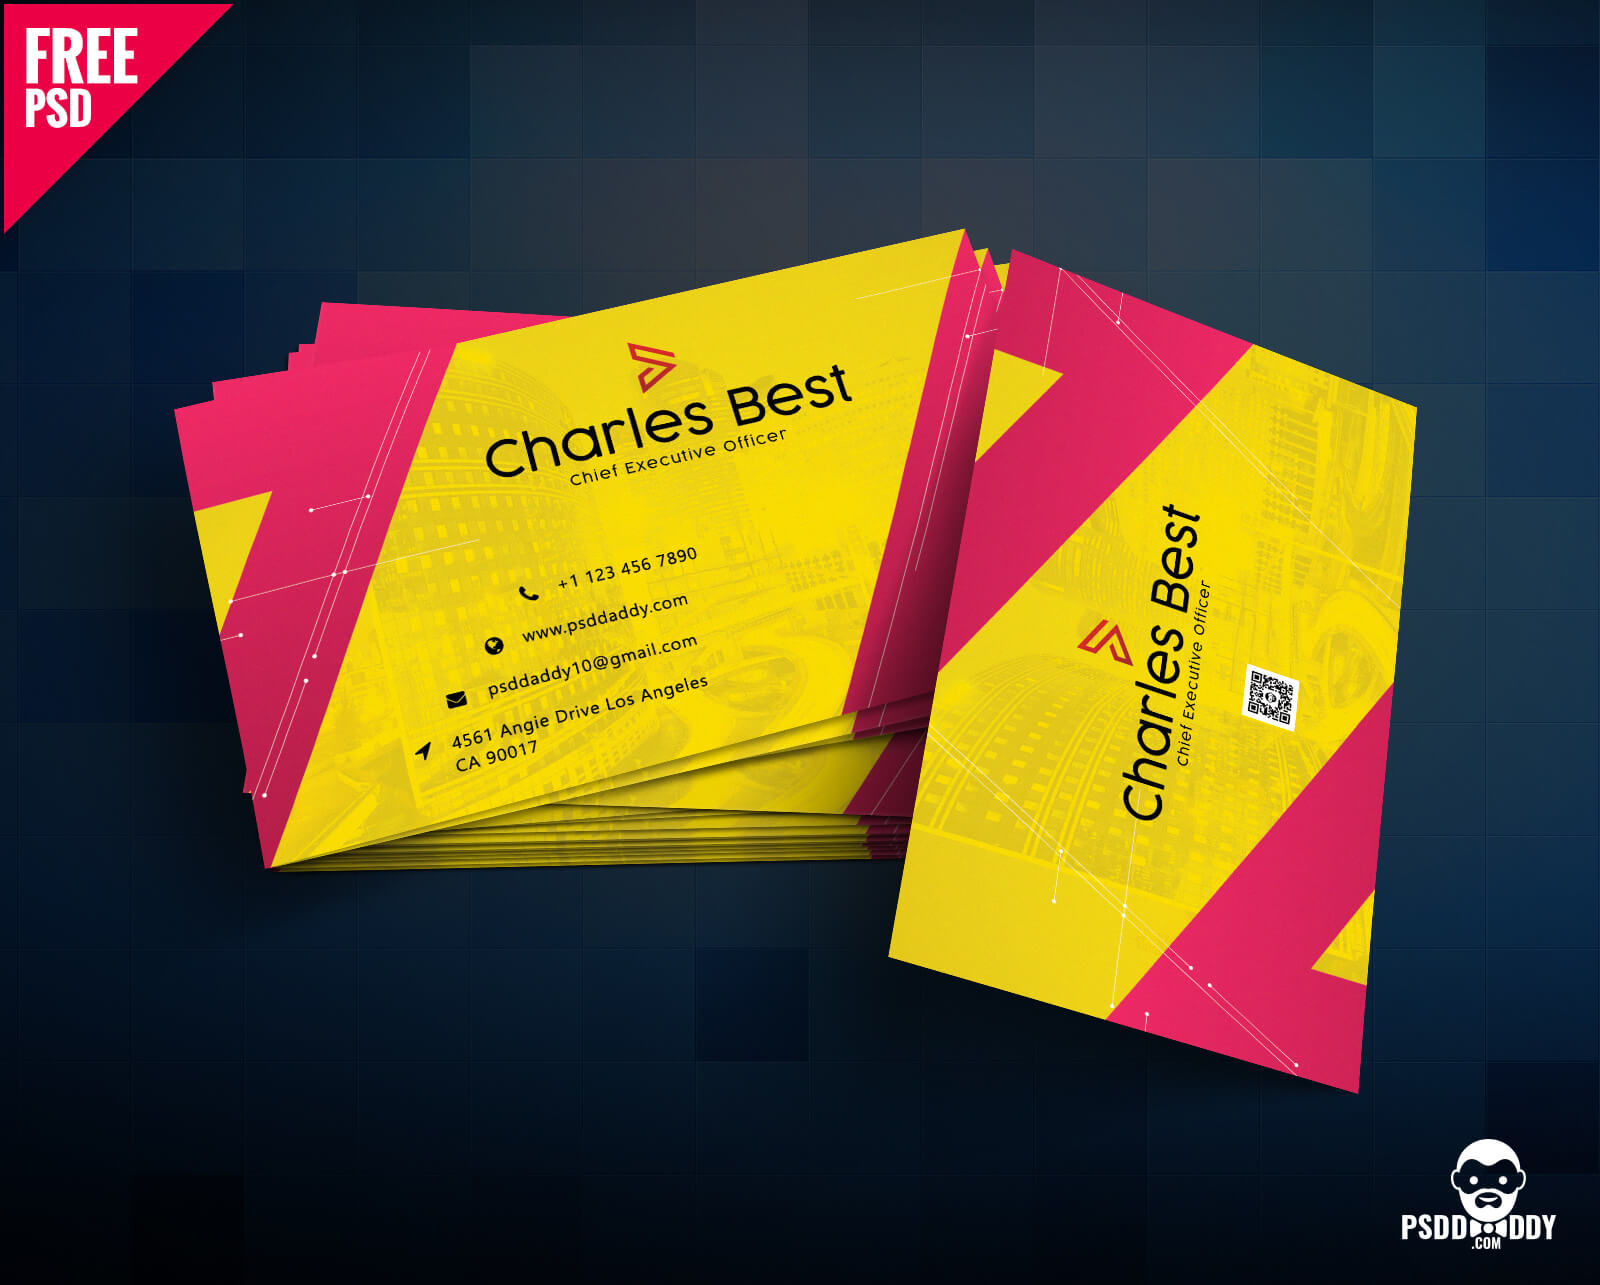 Download] Creative Business Card Free Psd   Psddaddy Inside Photoshop Name Card Template